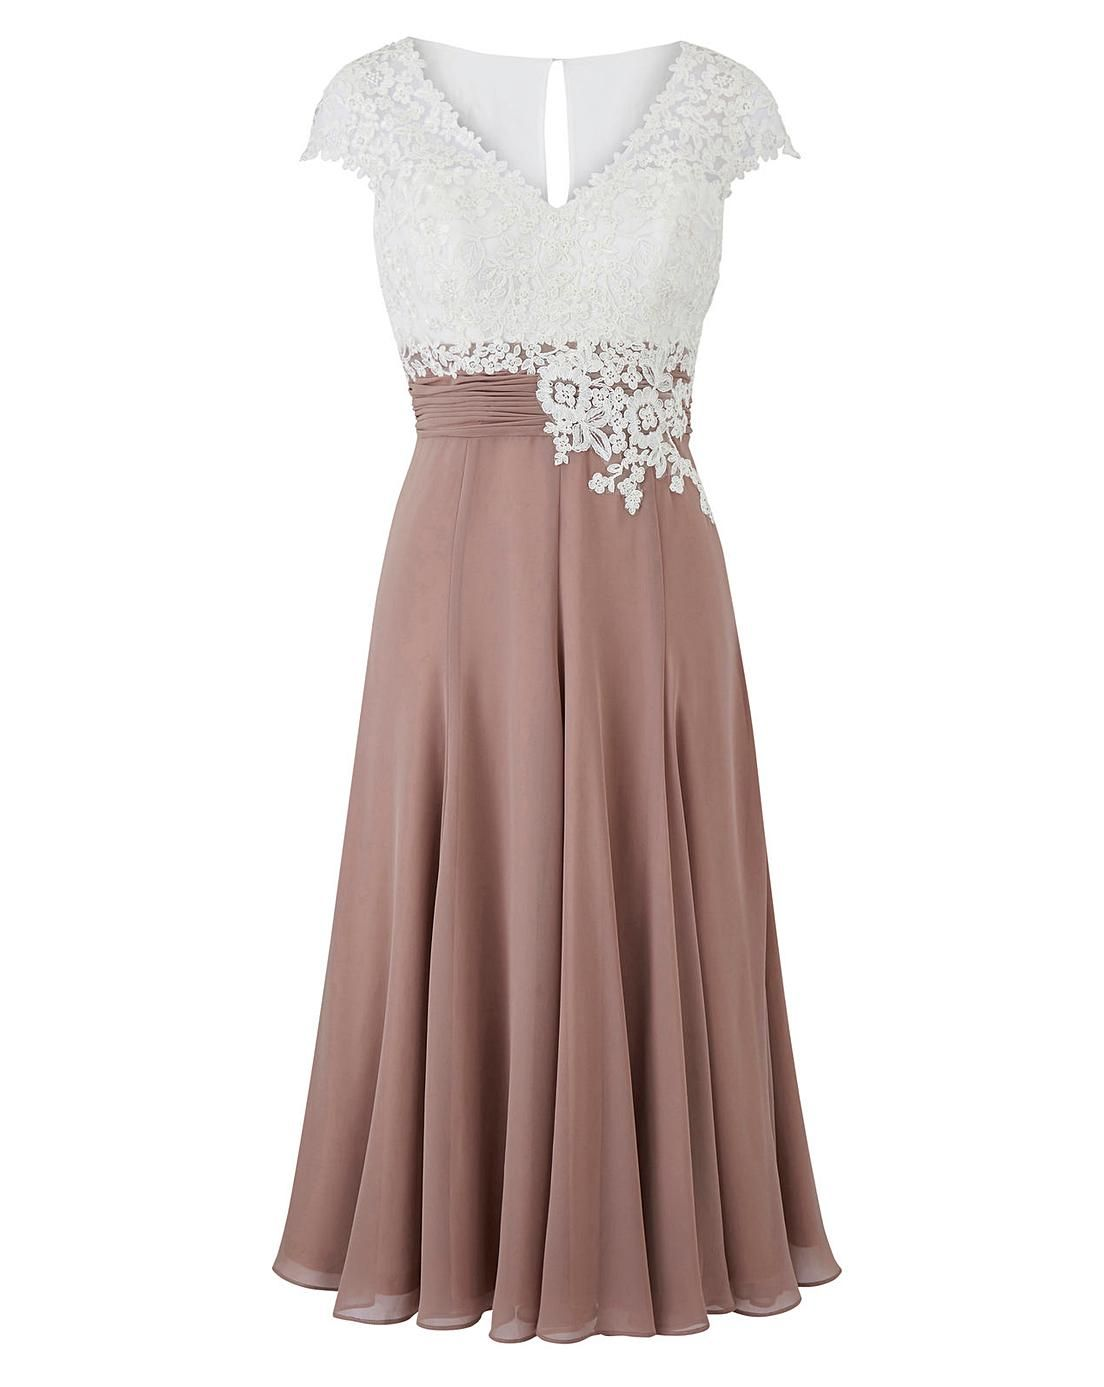 Nightingales Dress With Lace Detail J D Williams Lace Detailed Dress Mother Of The Bride Dresses Bride Dress Lace [ 1387 x 1104 Pixel ]